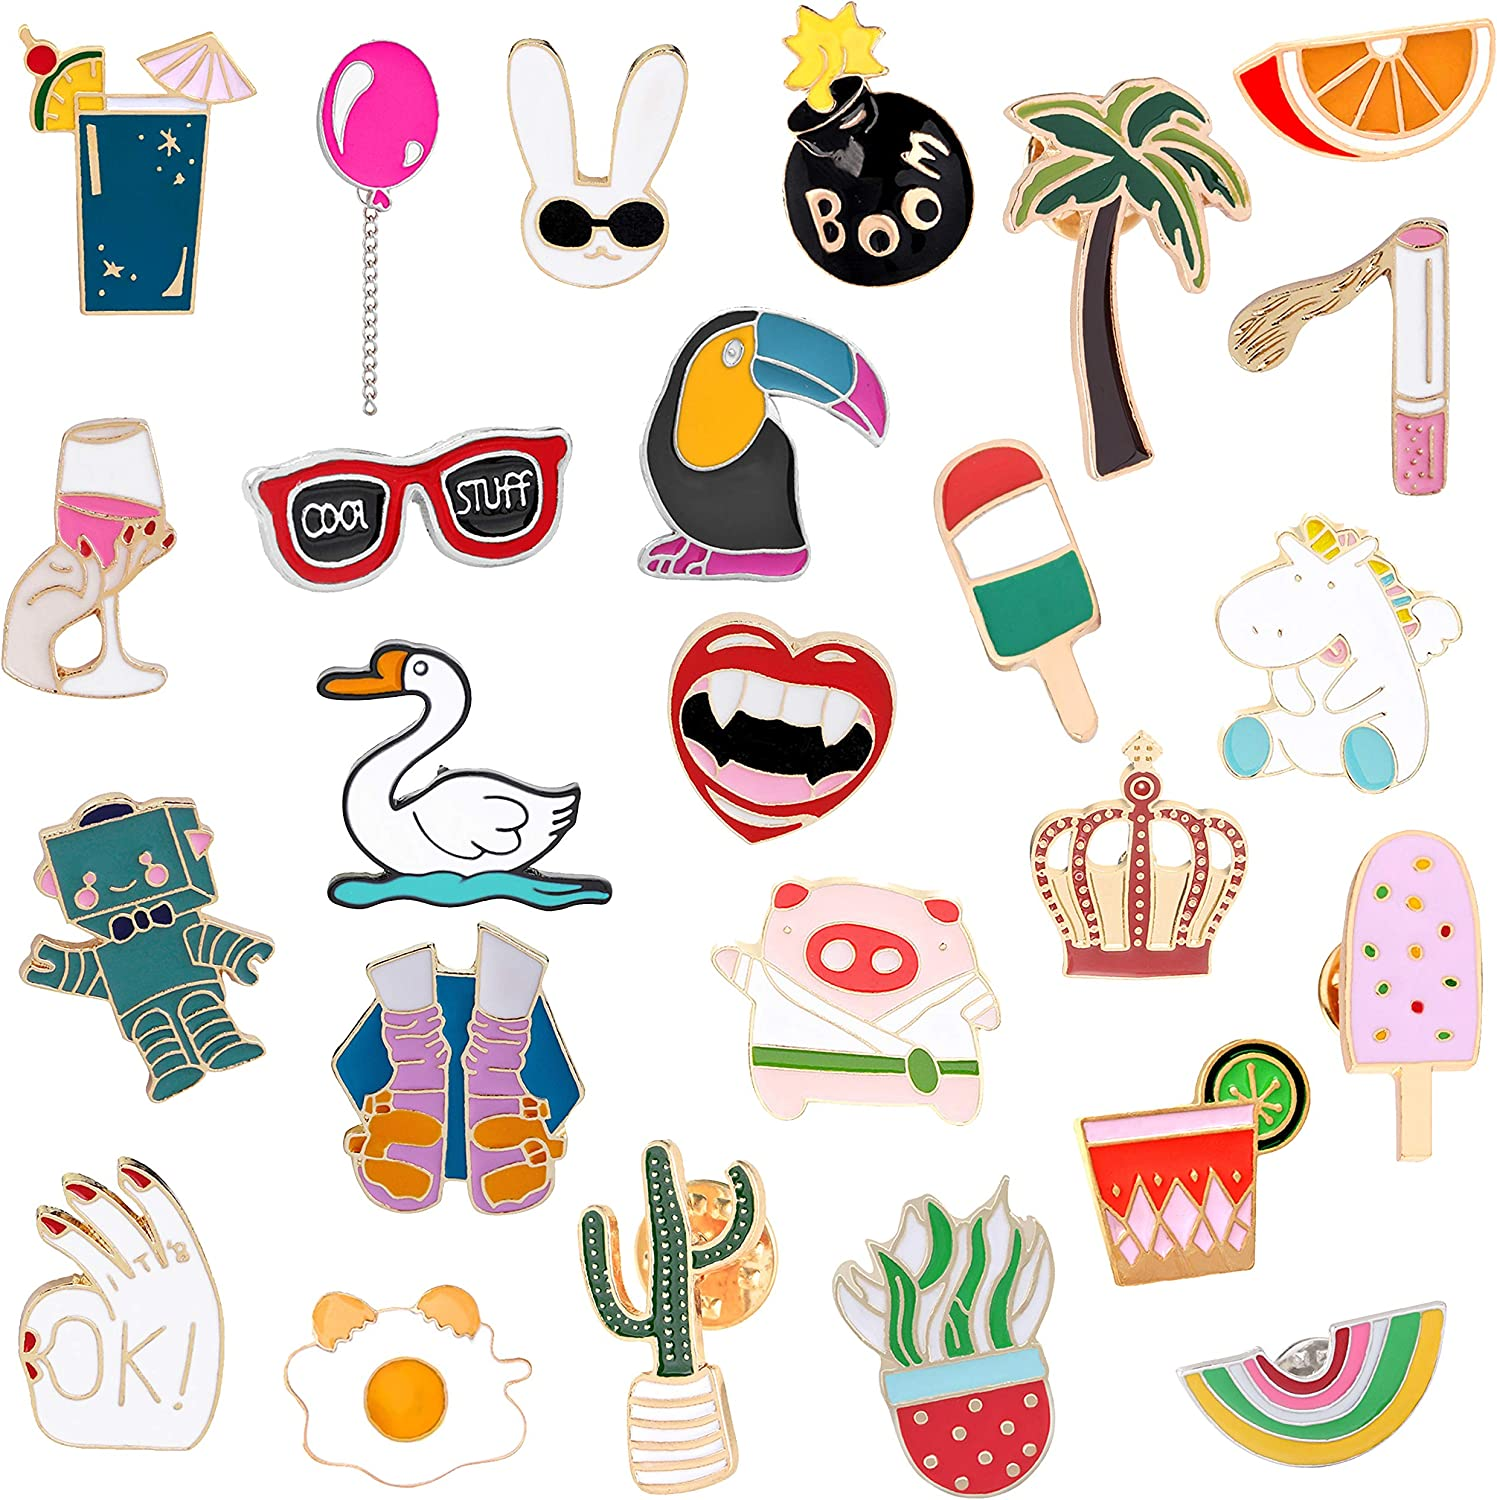 ZTWEDEN 25 Pieces Cute Enamel Lapel Pin Cartoon Brooch Pin Badges Brooch Pins Set for Clothing Jackets Backpacks DIY Crafts Accessories Supplies